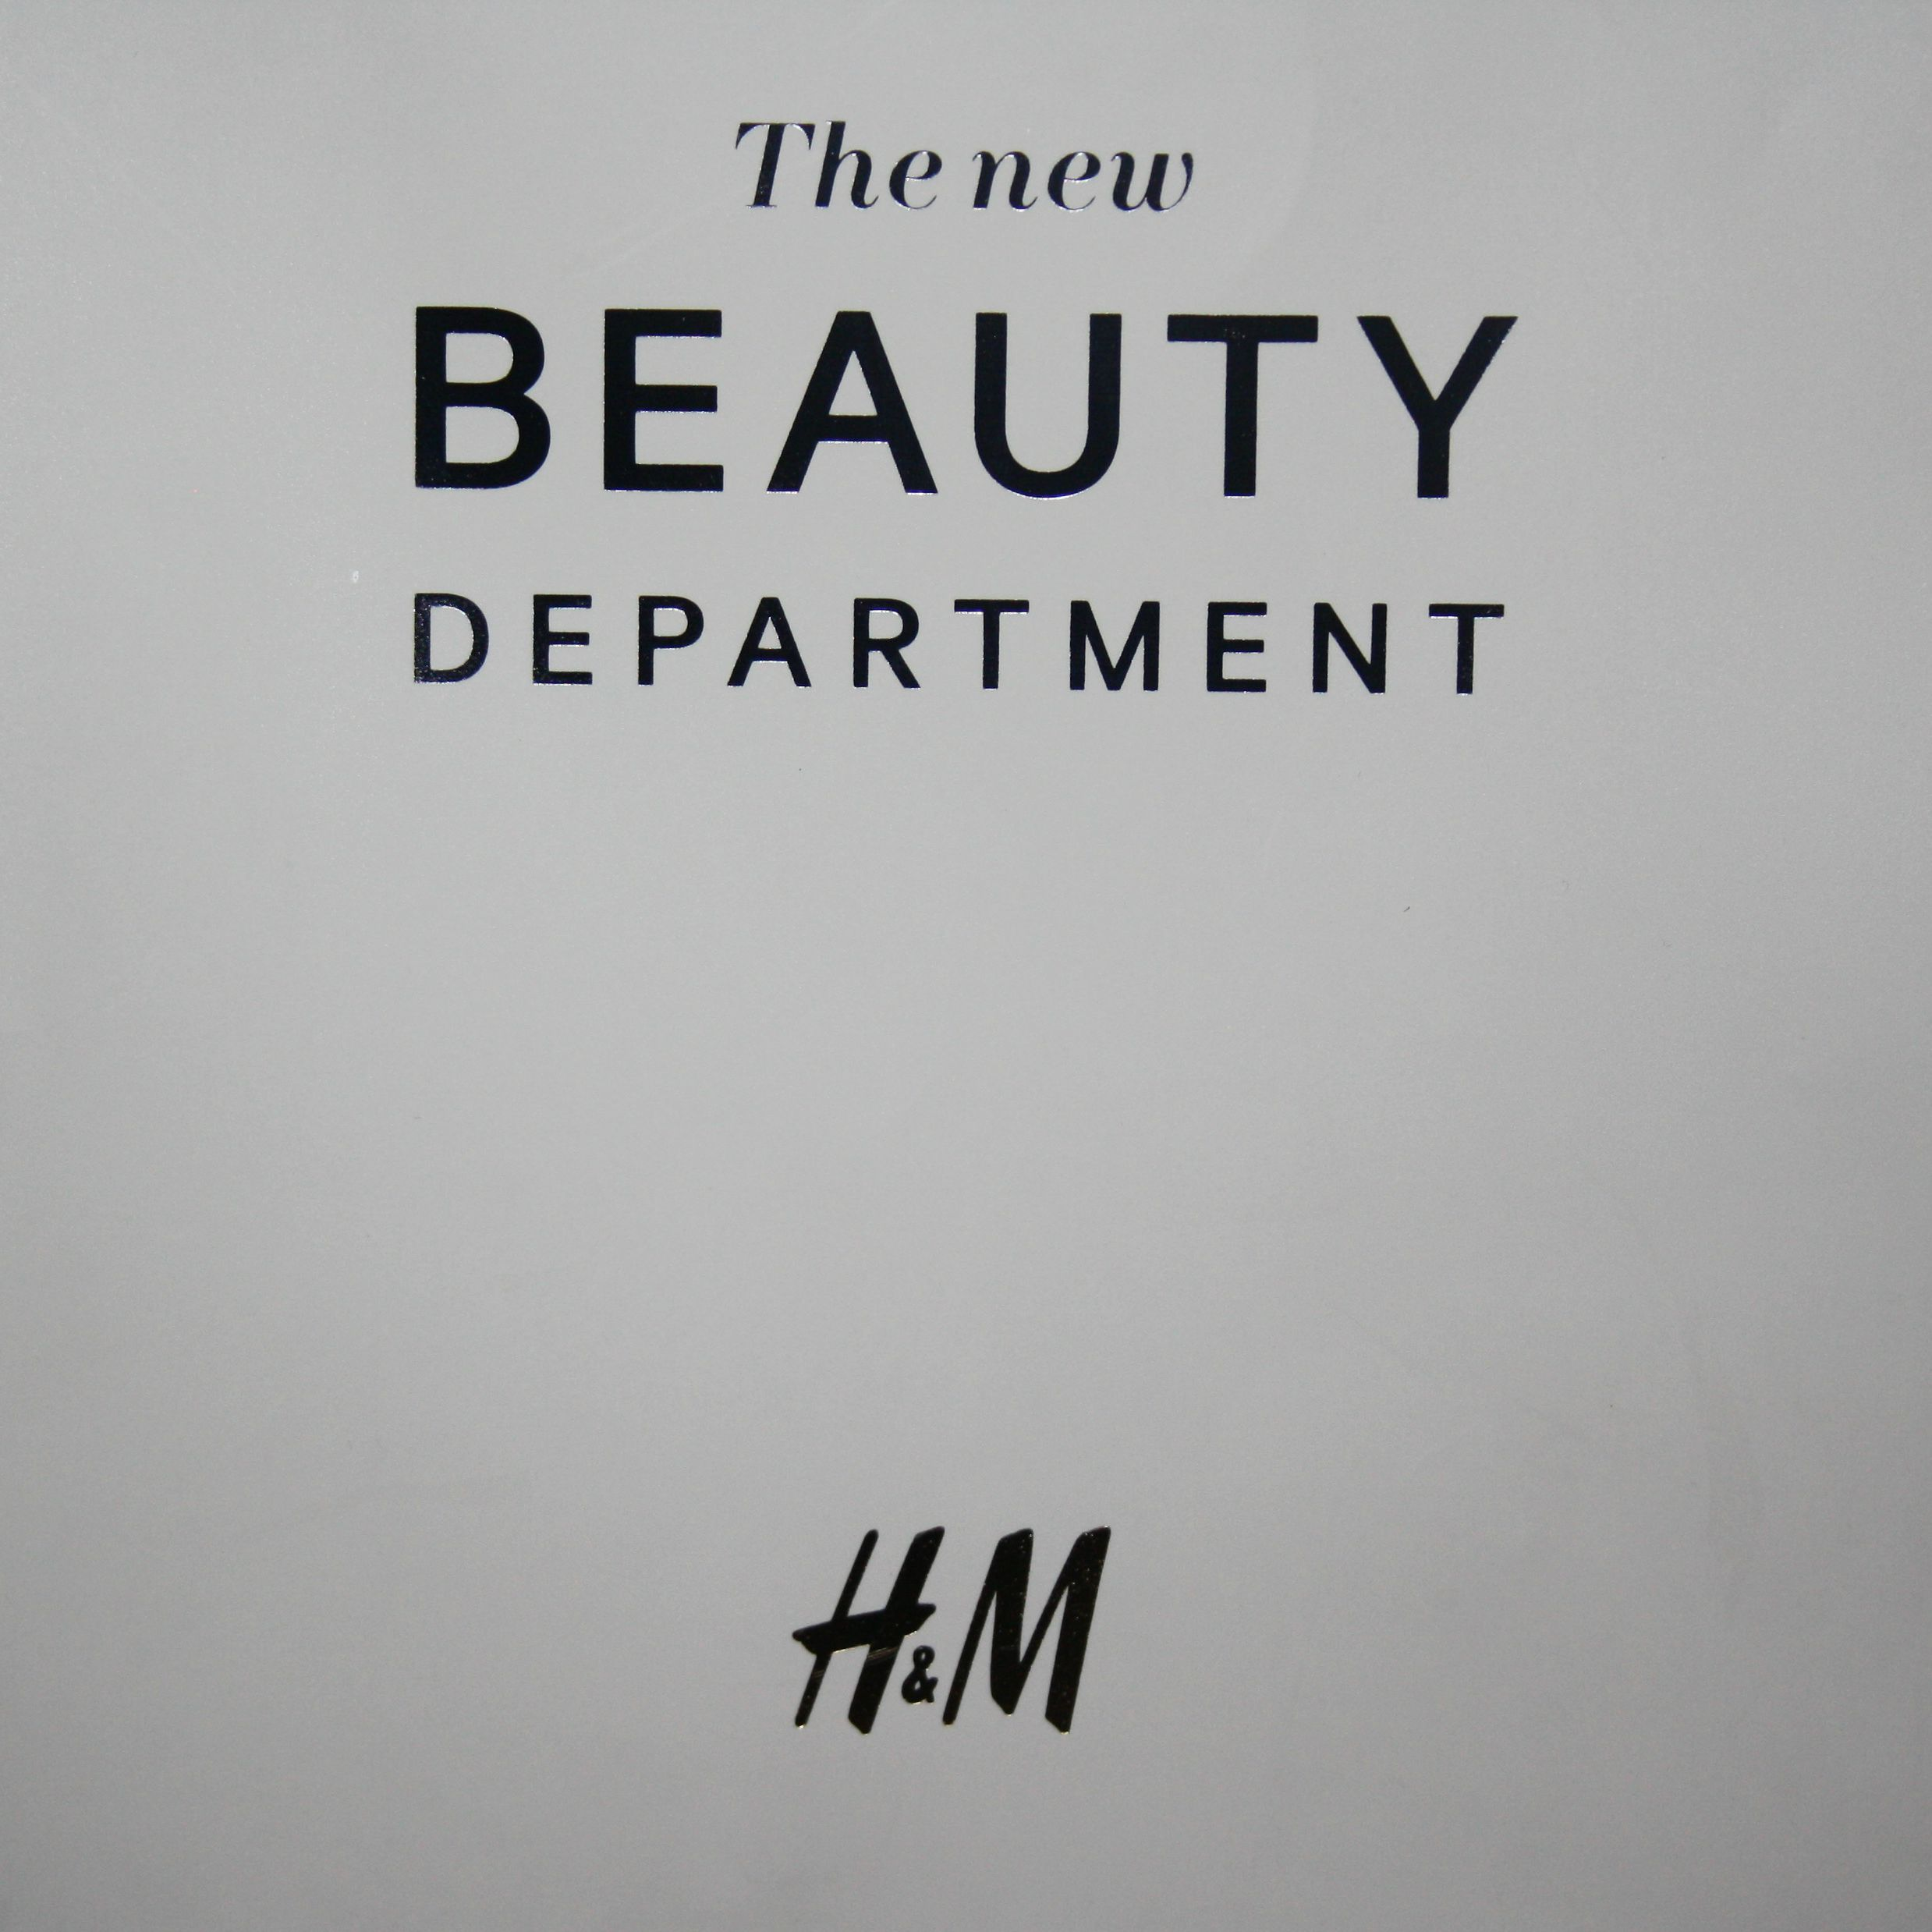 The new beauty department by H&M.jpg